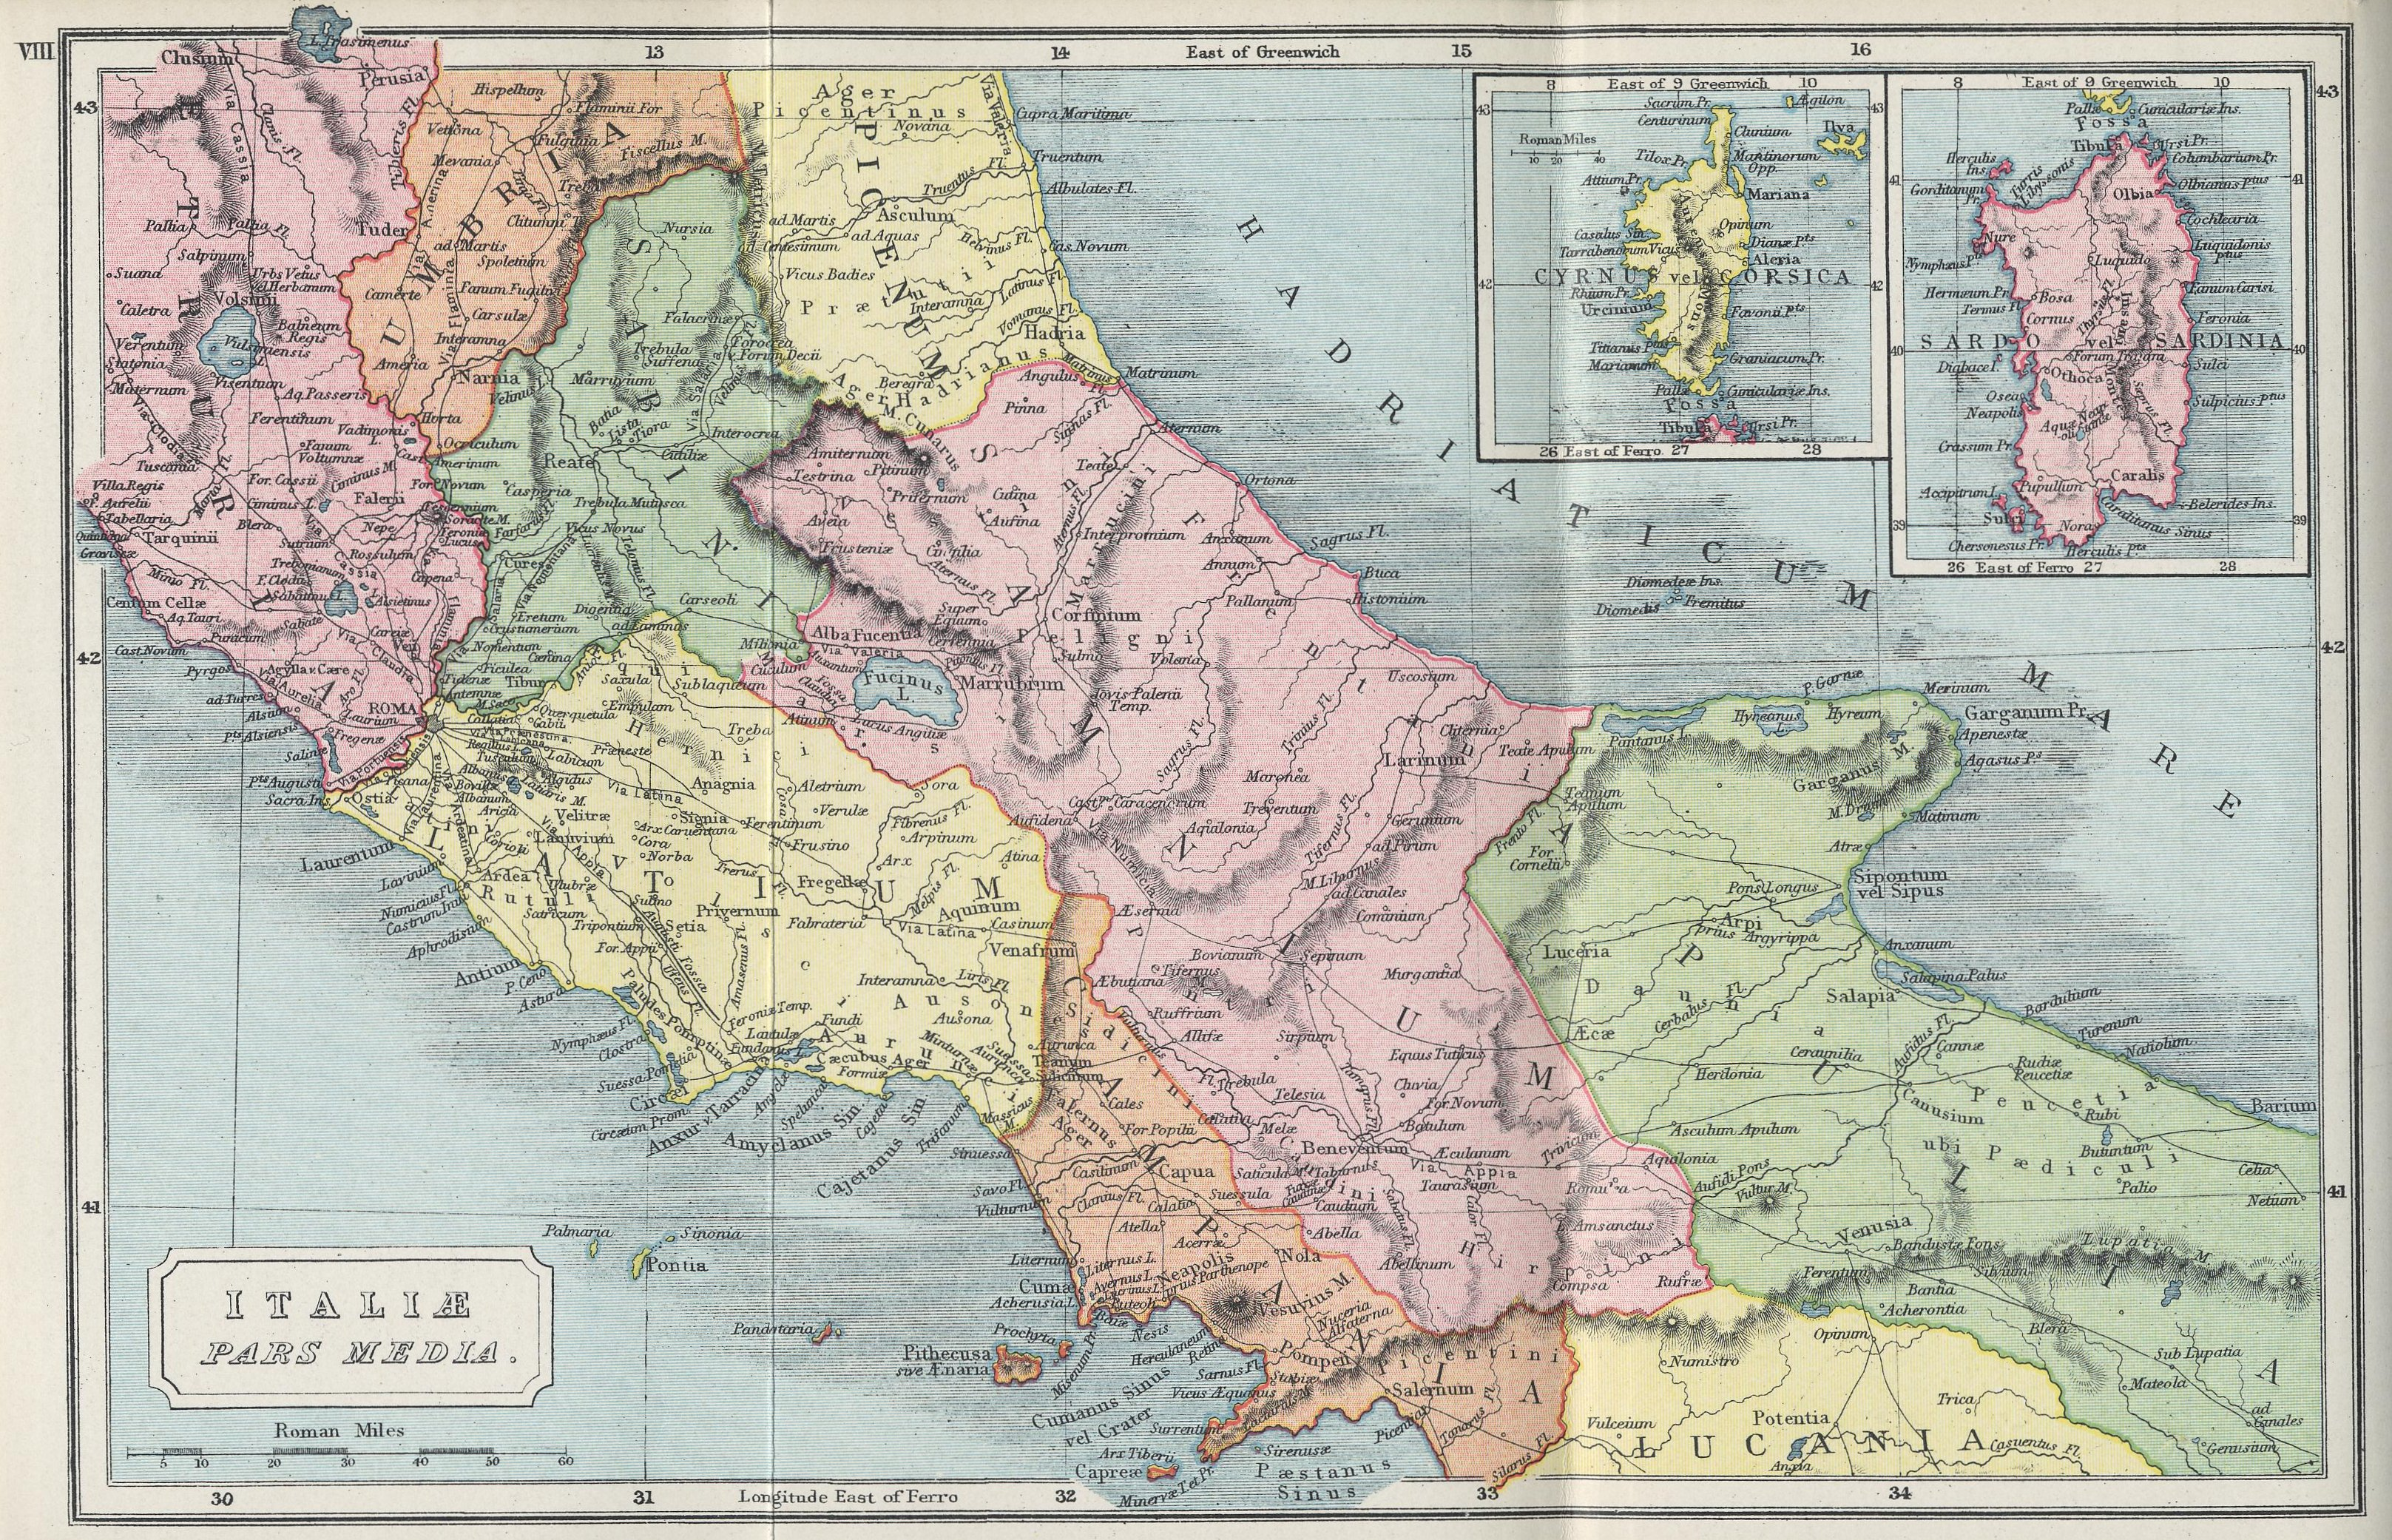 Map of Central Italy 70 BC - AD 180 with insets of Corsica and Sardinia